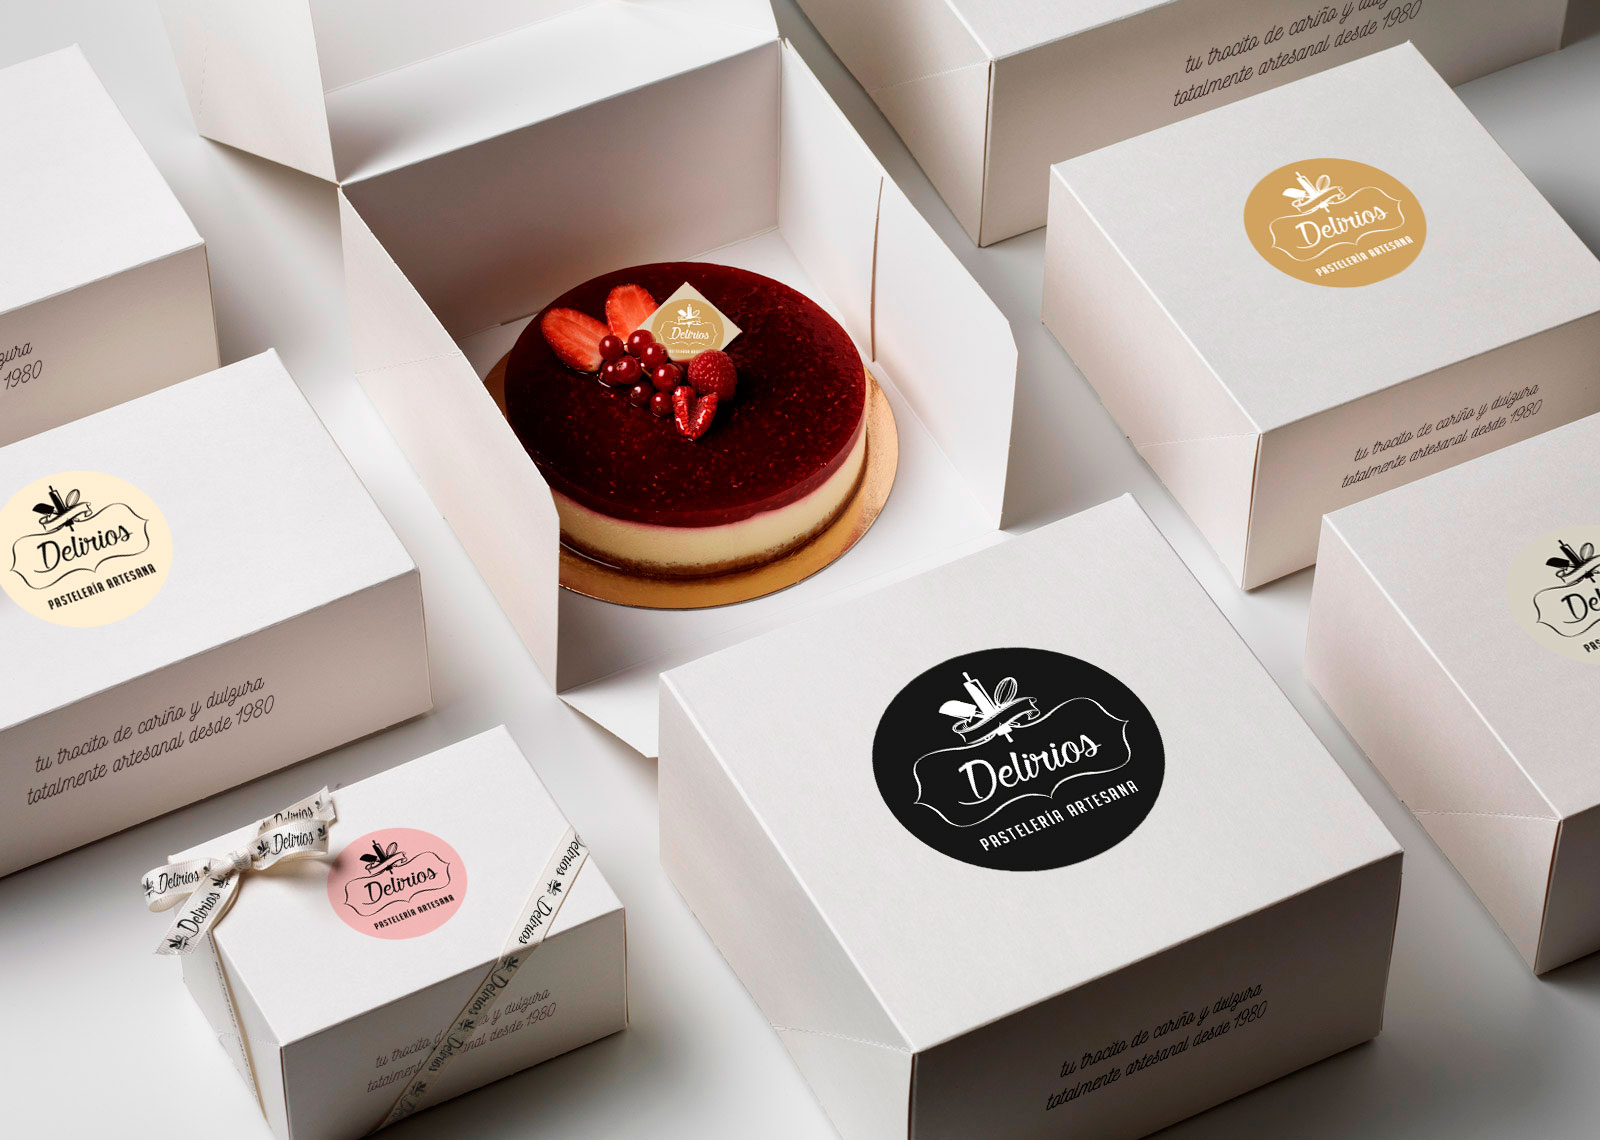 Packaging Delirios de tartas - the Brand Doctor